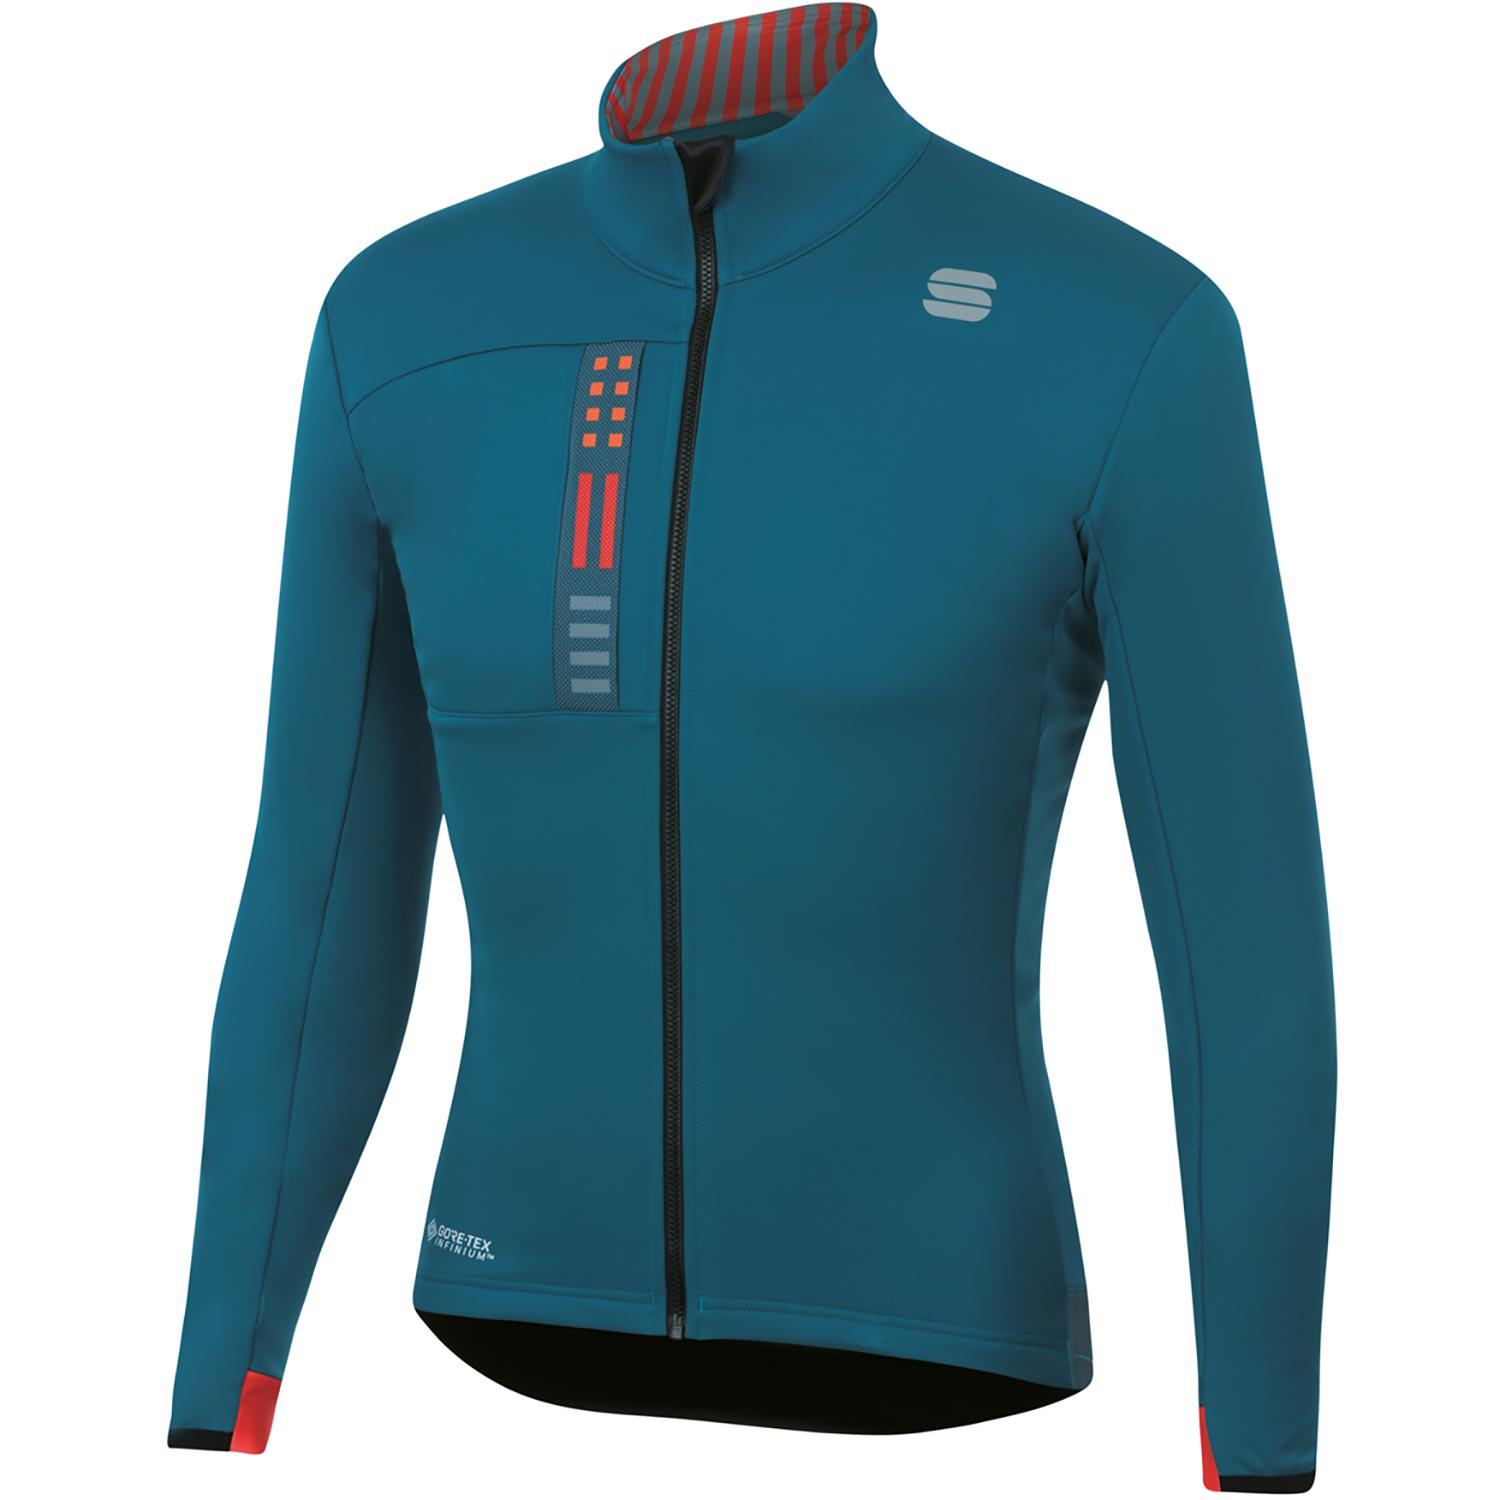 Sportful-Sportful Super Jacket--saddleback-elite-performance-cycling